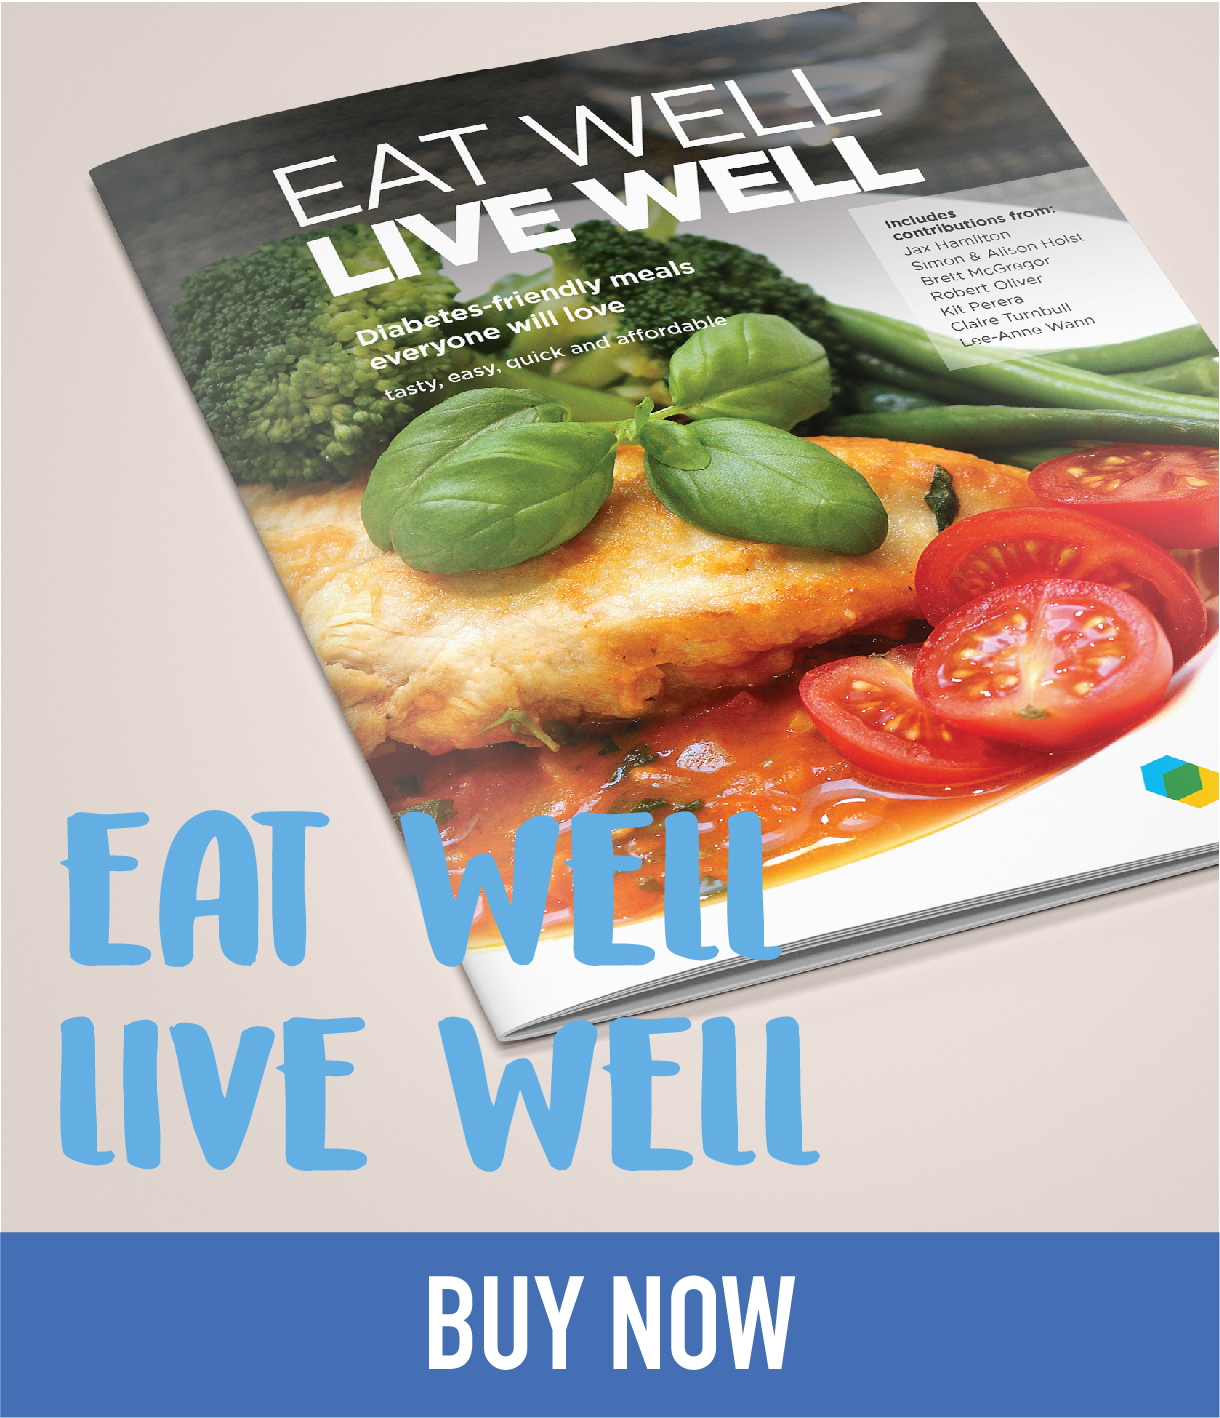 HOMEPAGE-EAT WELL LIVE WELL.jpg